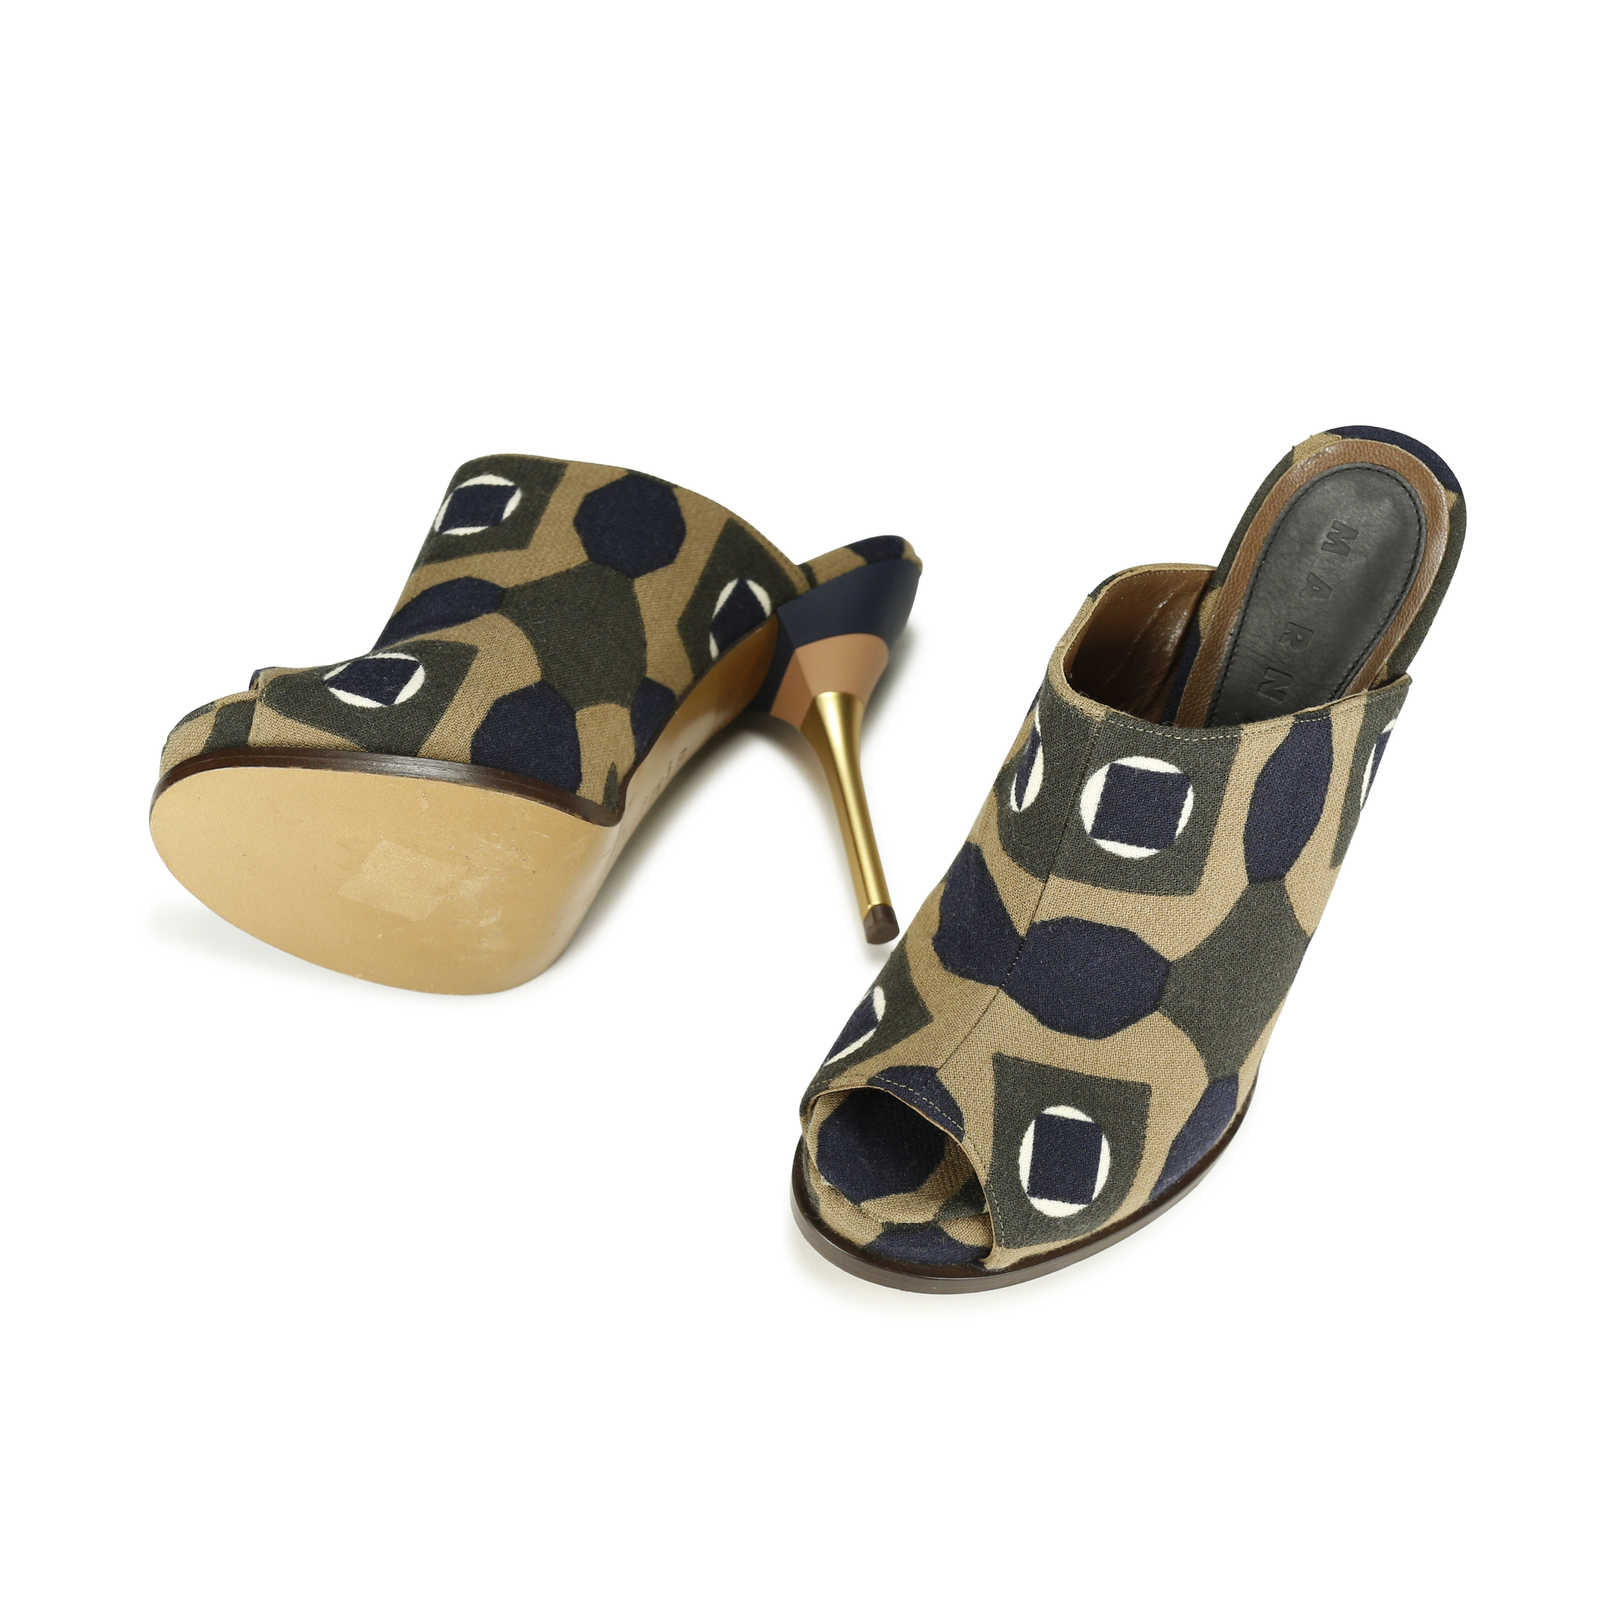 69c919ada89c ... Authentic Second Hand Marni Geometric Printed Canvas Mules  (PSS-156-00035) ...